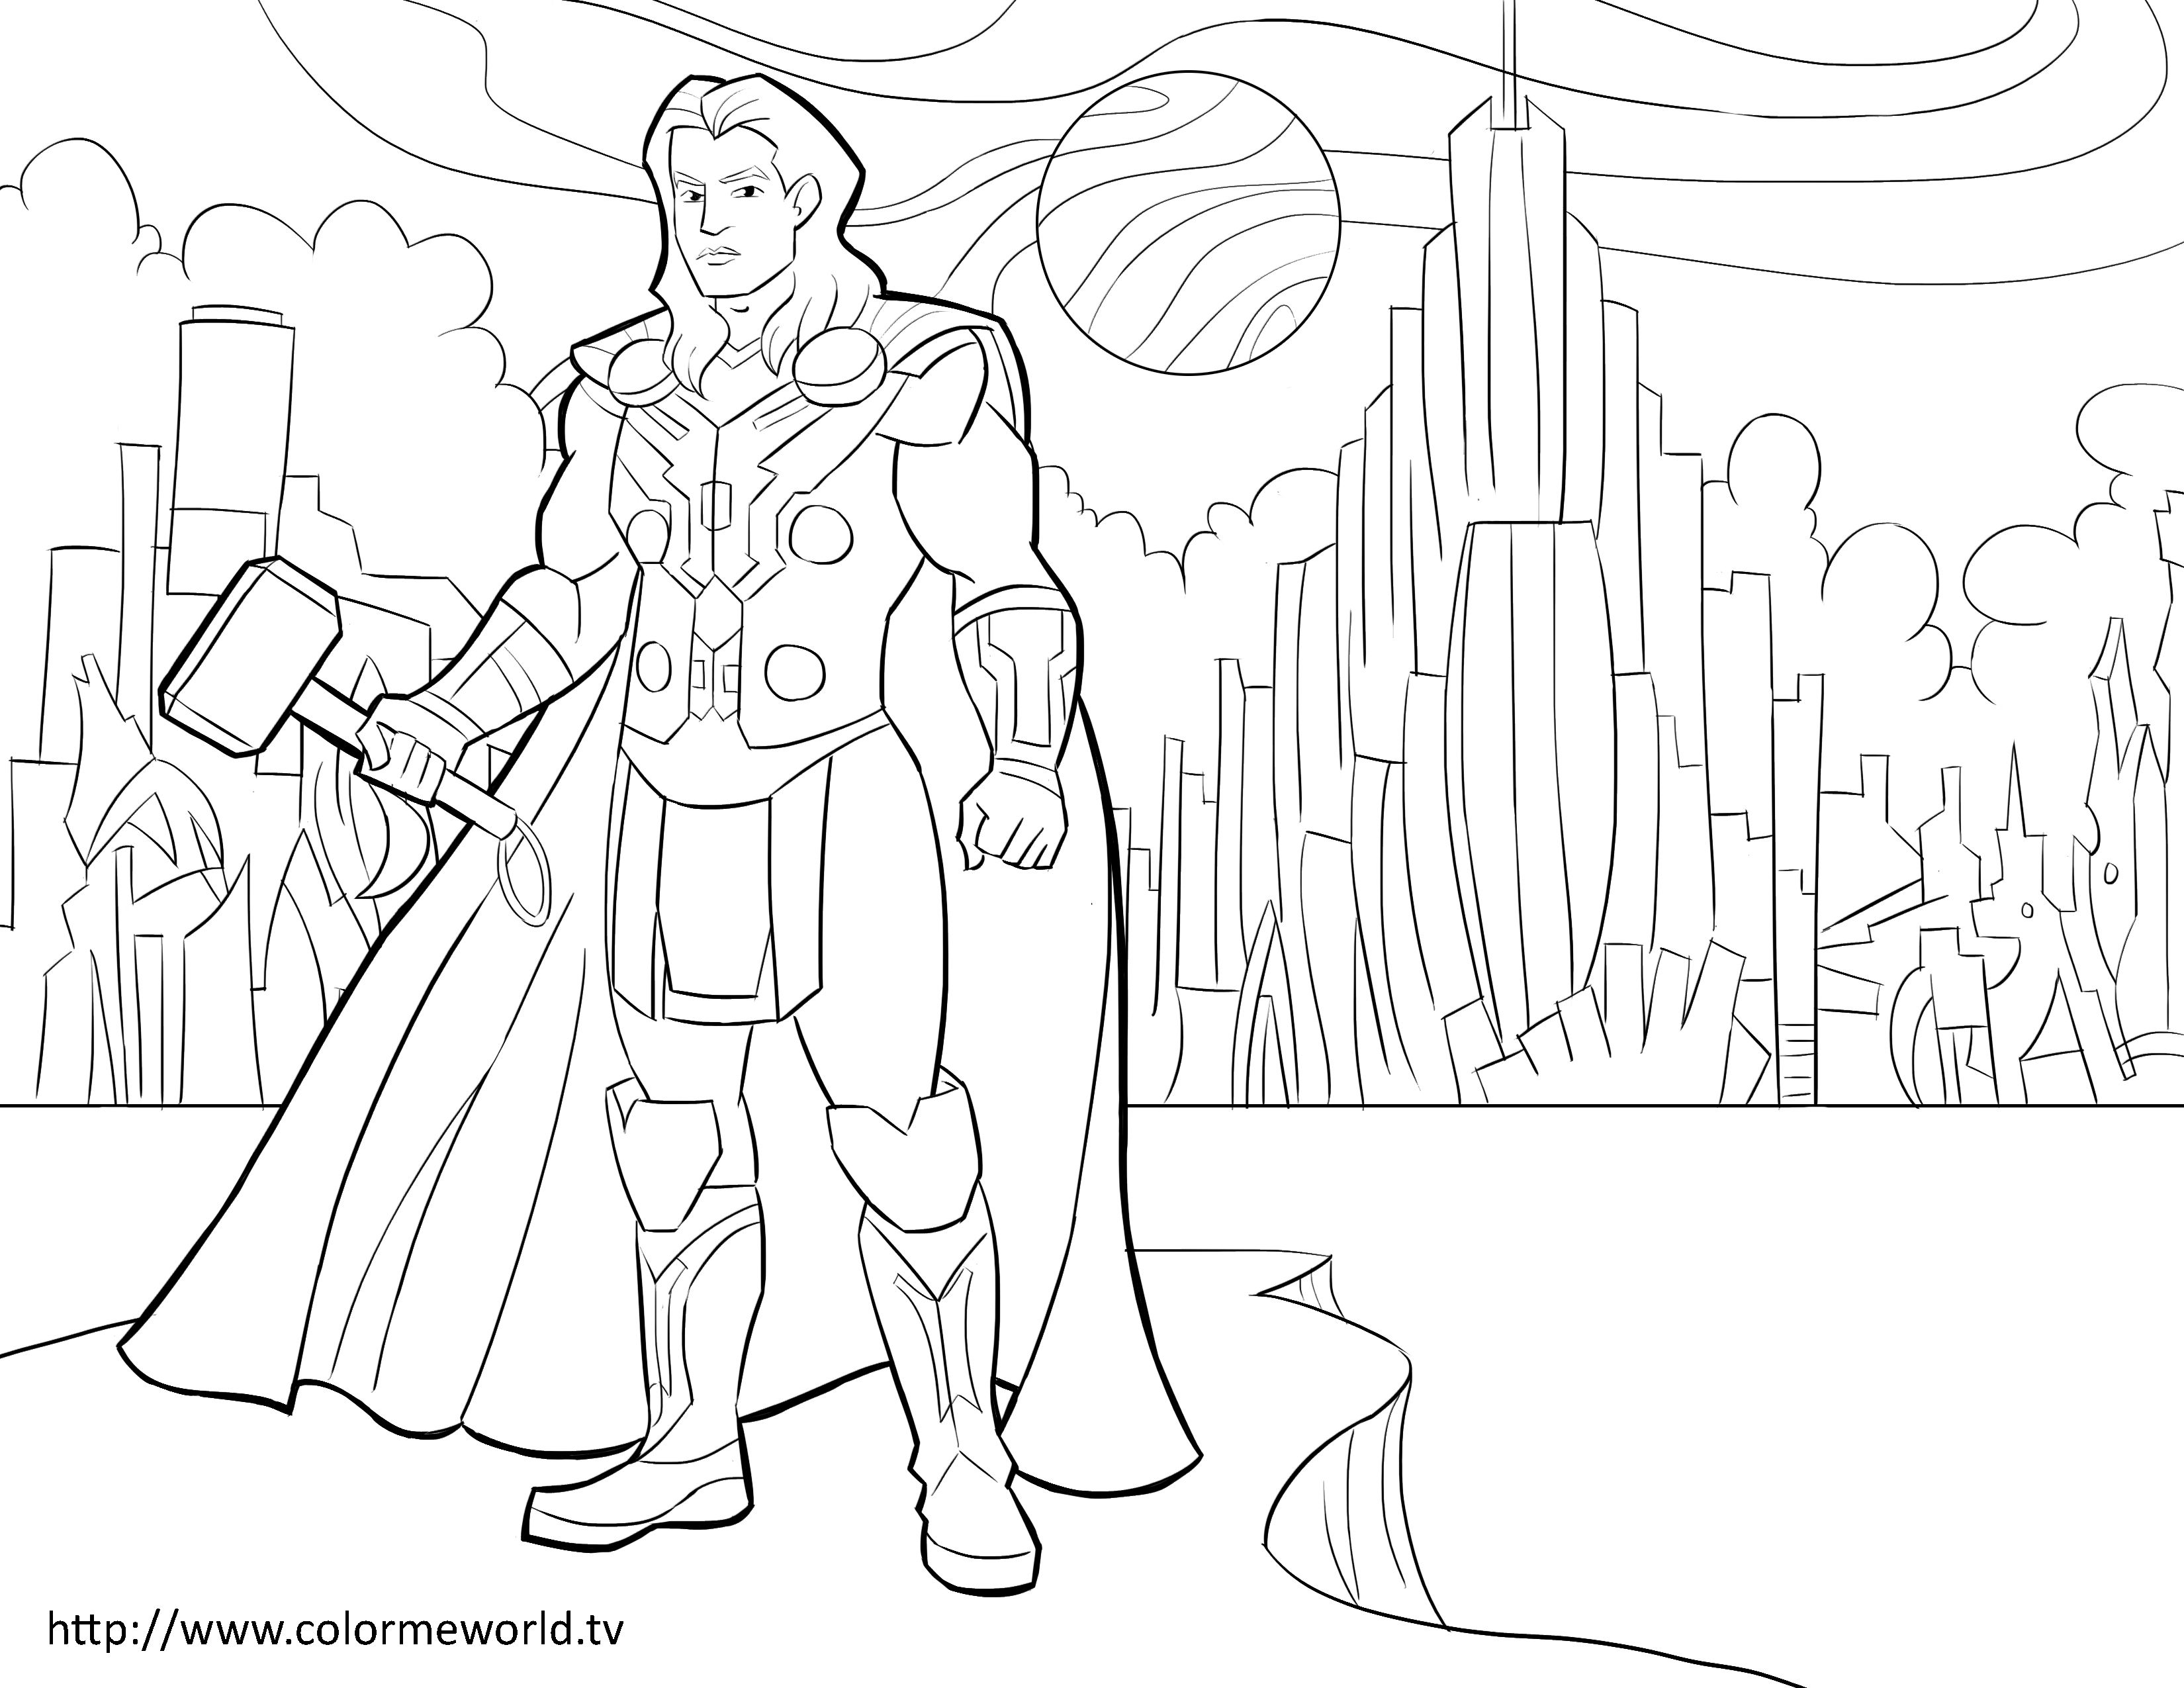 thor pdf printable coloring page - Thor Printable Coloring Pages